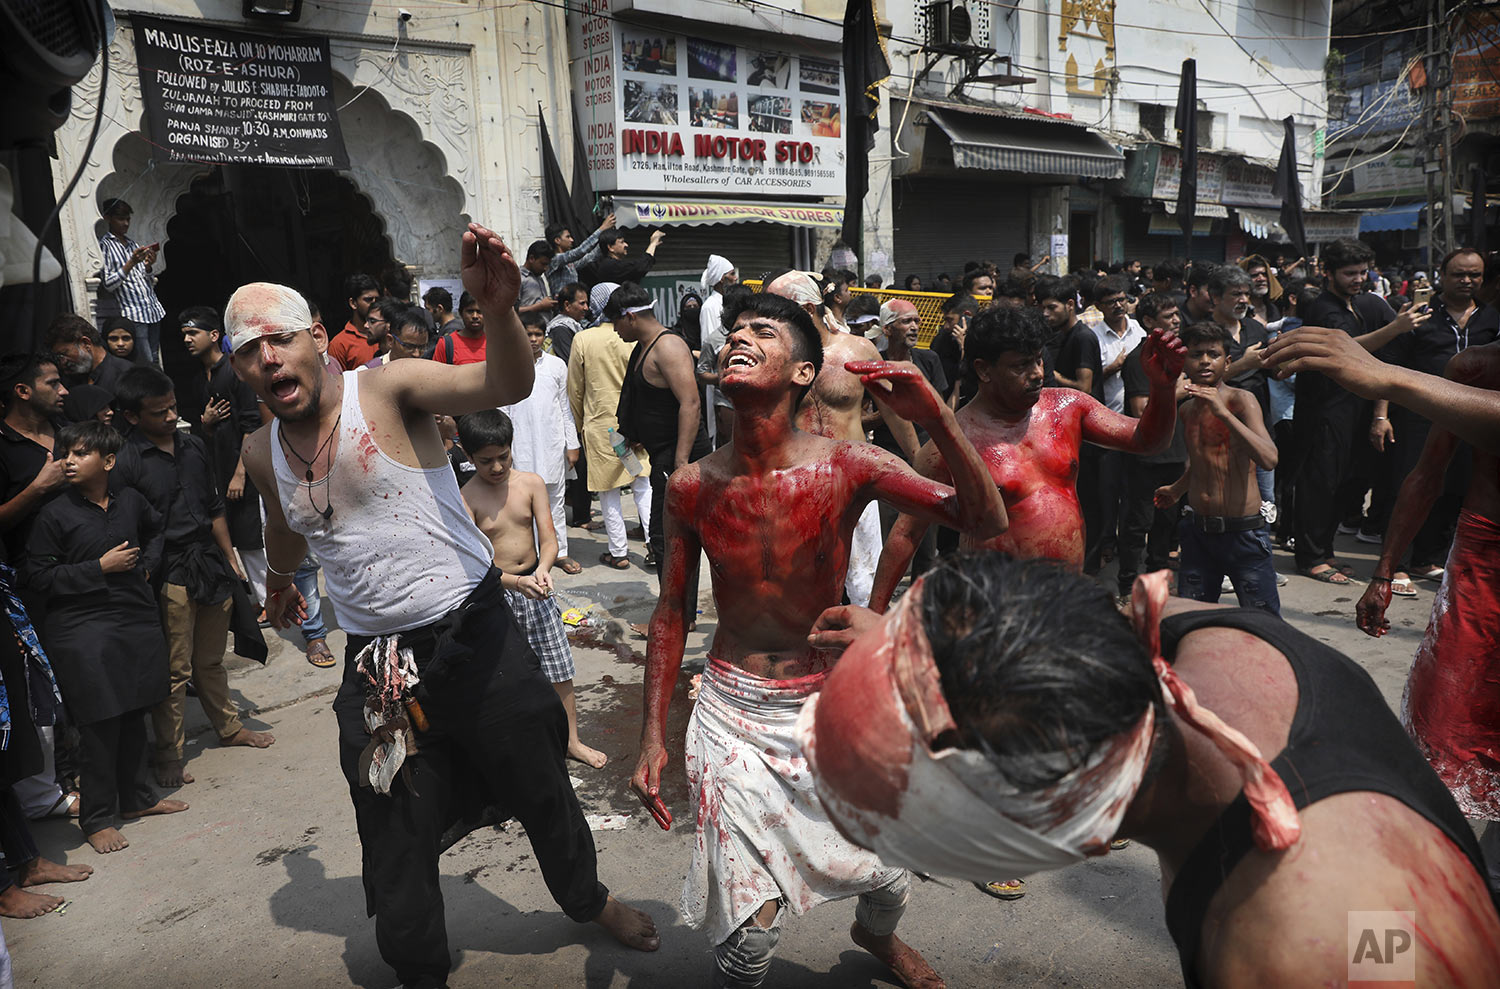 Indian Shiite Muslims flagellate themselves with chained knives during an Ashoura procession in New Delhi, India, Tuesday, Sept. 10, 2019. (AP Photo/Manish Swarup)